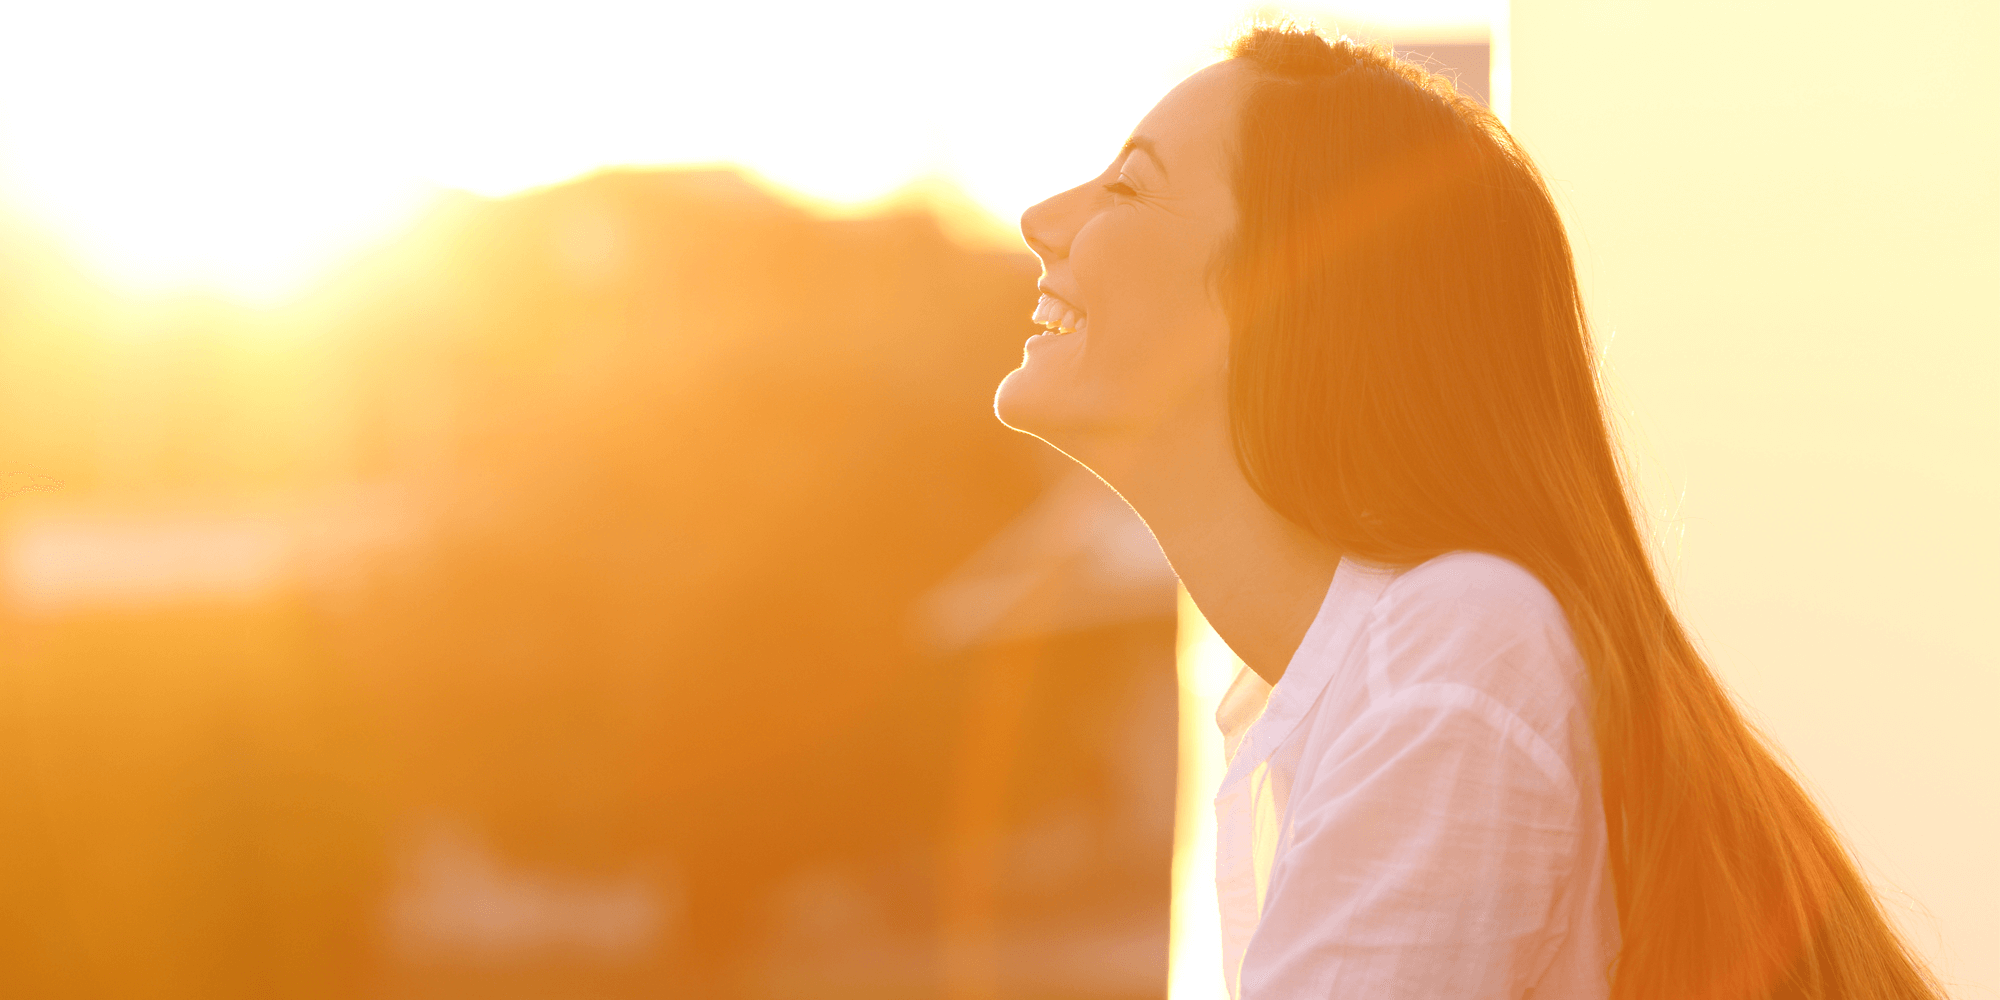 Woman looking skyward enjoying sun on face.